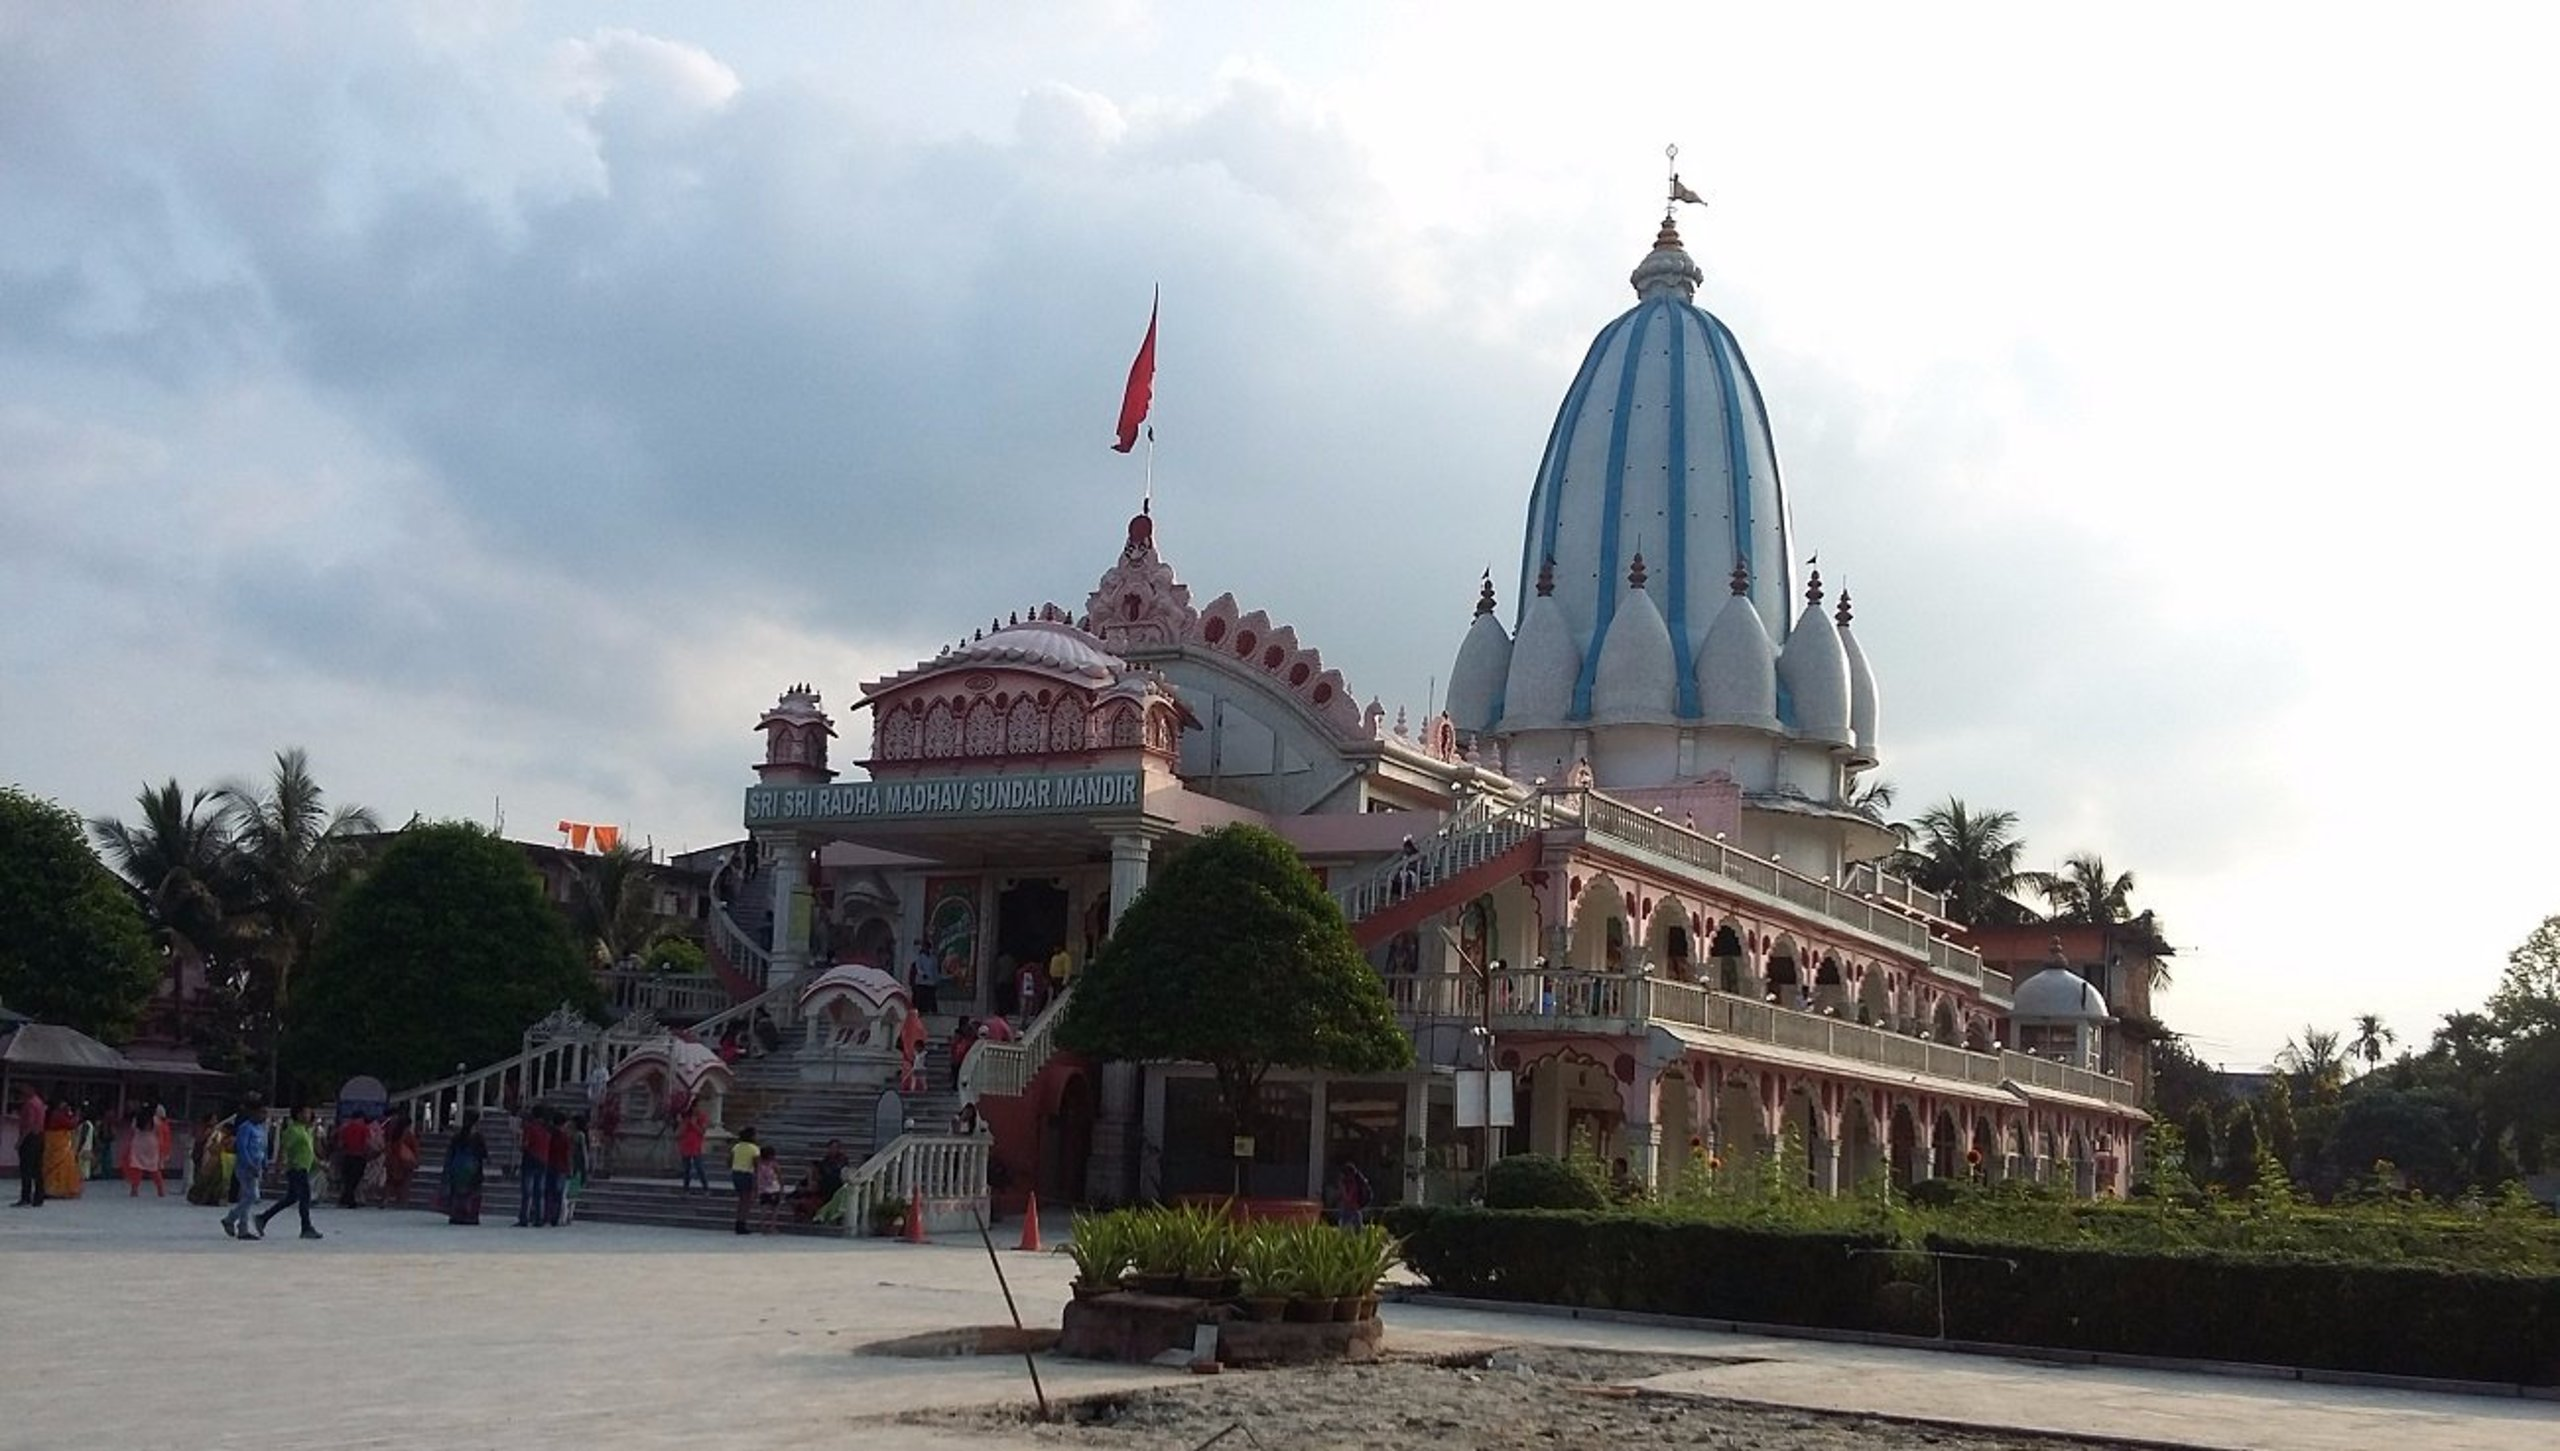 Top Things To Do in Siliguri - Invoking Spiritualism By Visiting ISKCON temple in Siliguri